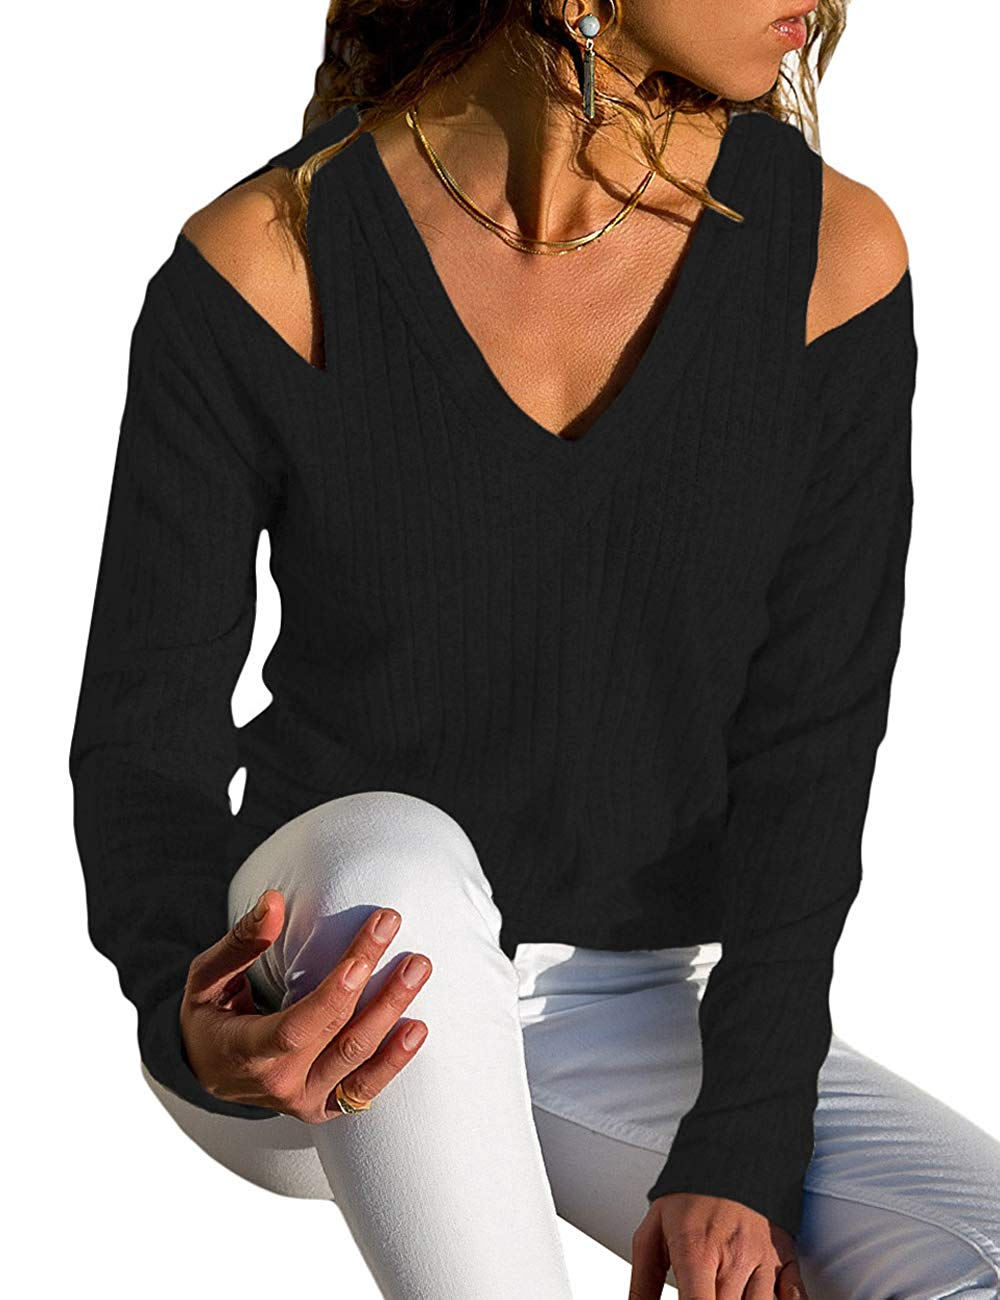 CILKOO Womens Sexy V Neck Cold Shoulder Long Sleeve Rib Knit Sweater Pullover Tops Blouses(S-XXL)